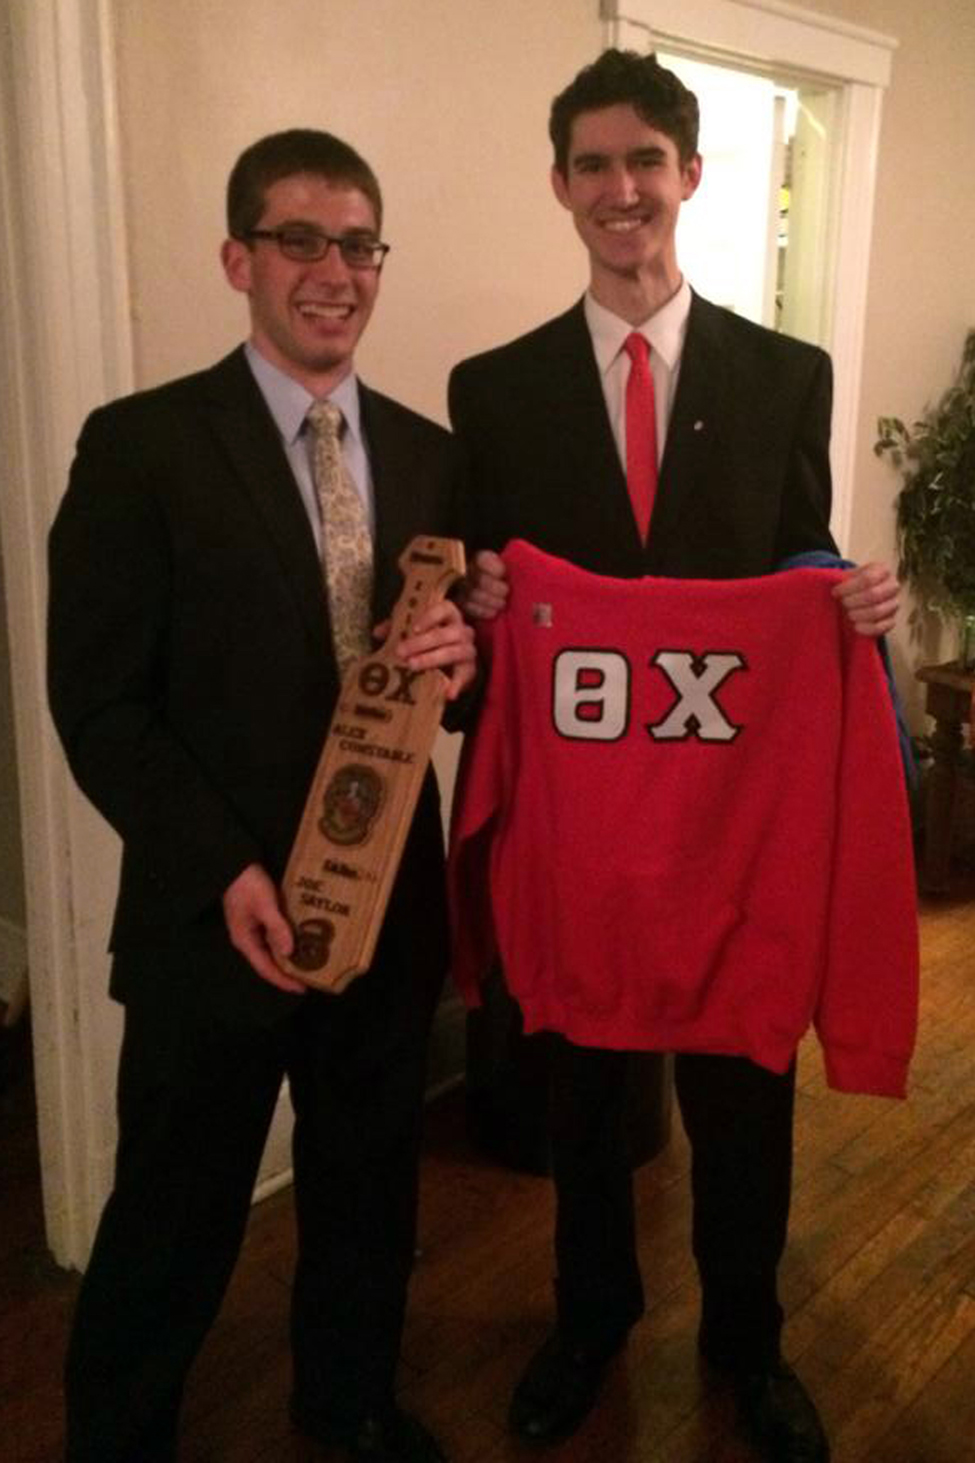 Alex Constable and Joey Saylor - Spring 2014 Initiation Night - April 2014